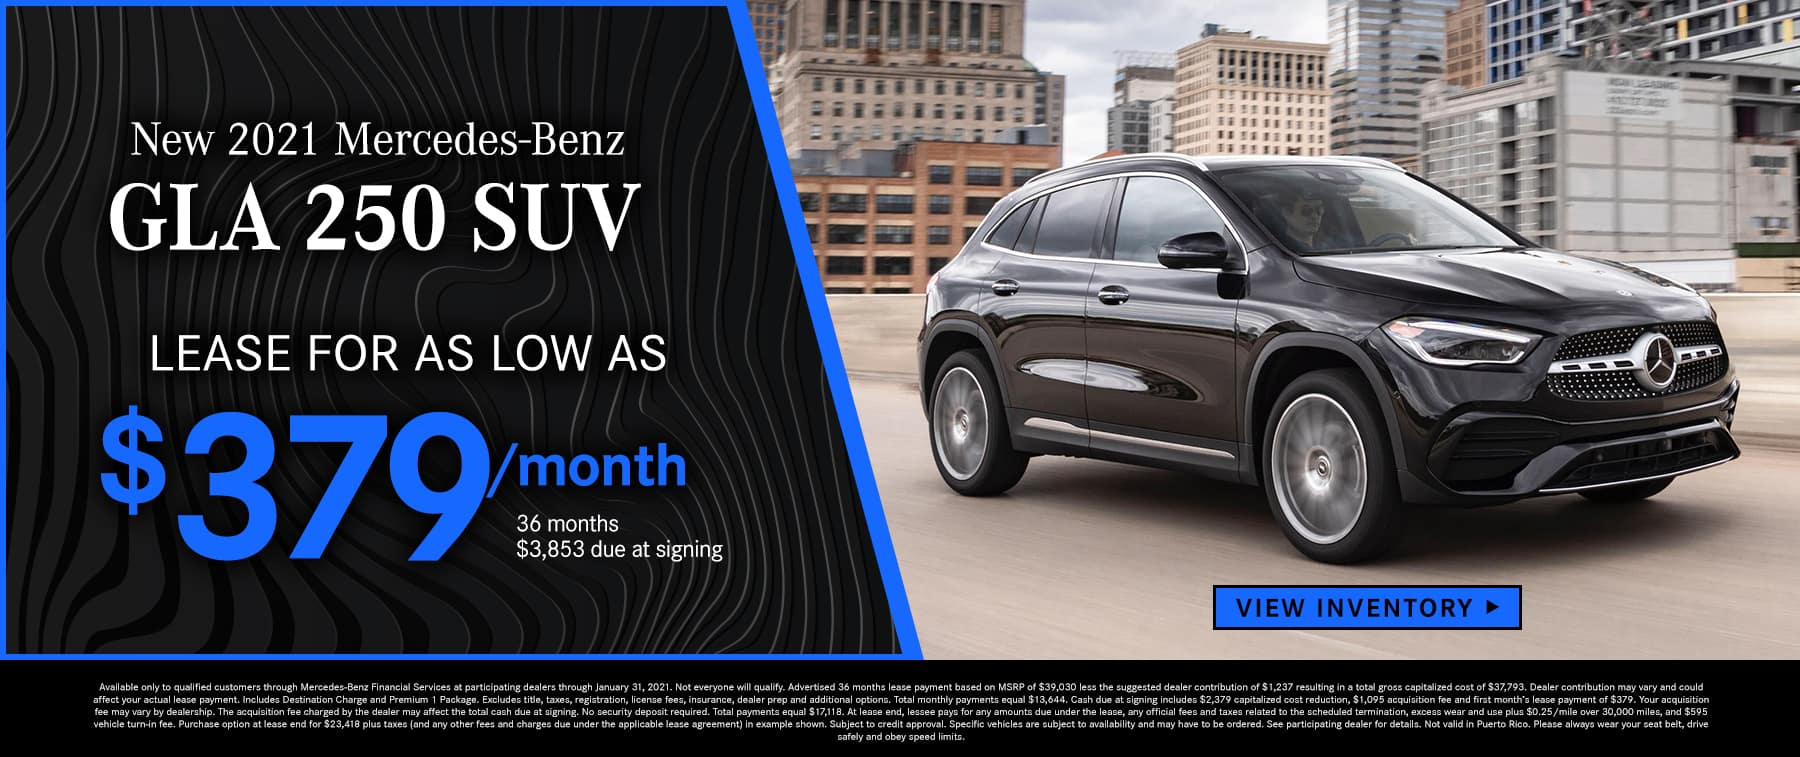 2021 GLA 250 SUV Lease as low as $379 Per Month 36 Months/10k Miles $3,853 Due at signing